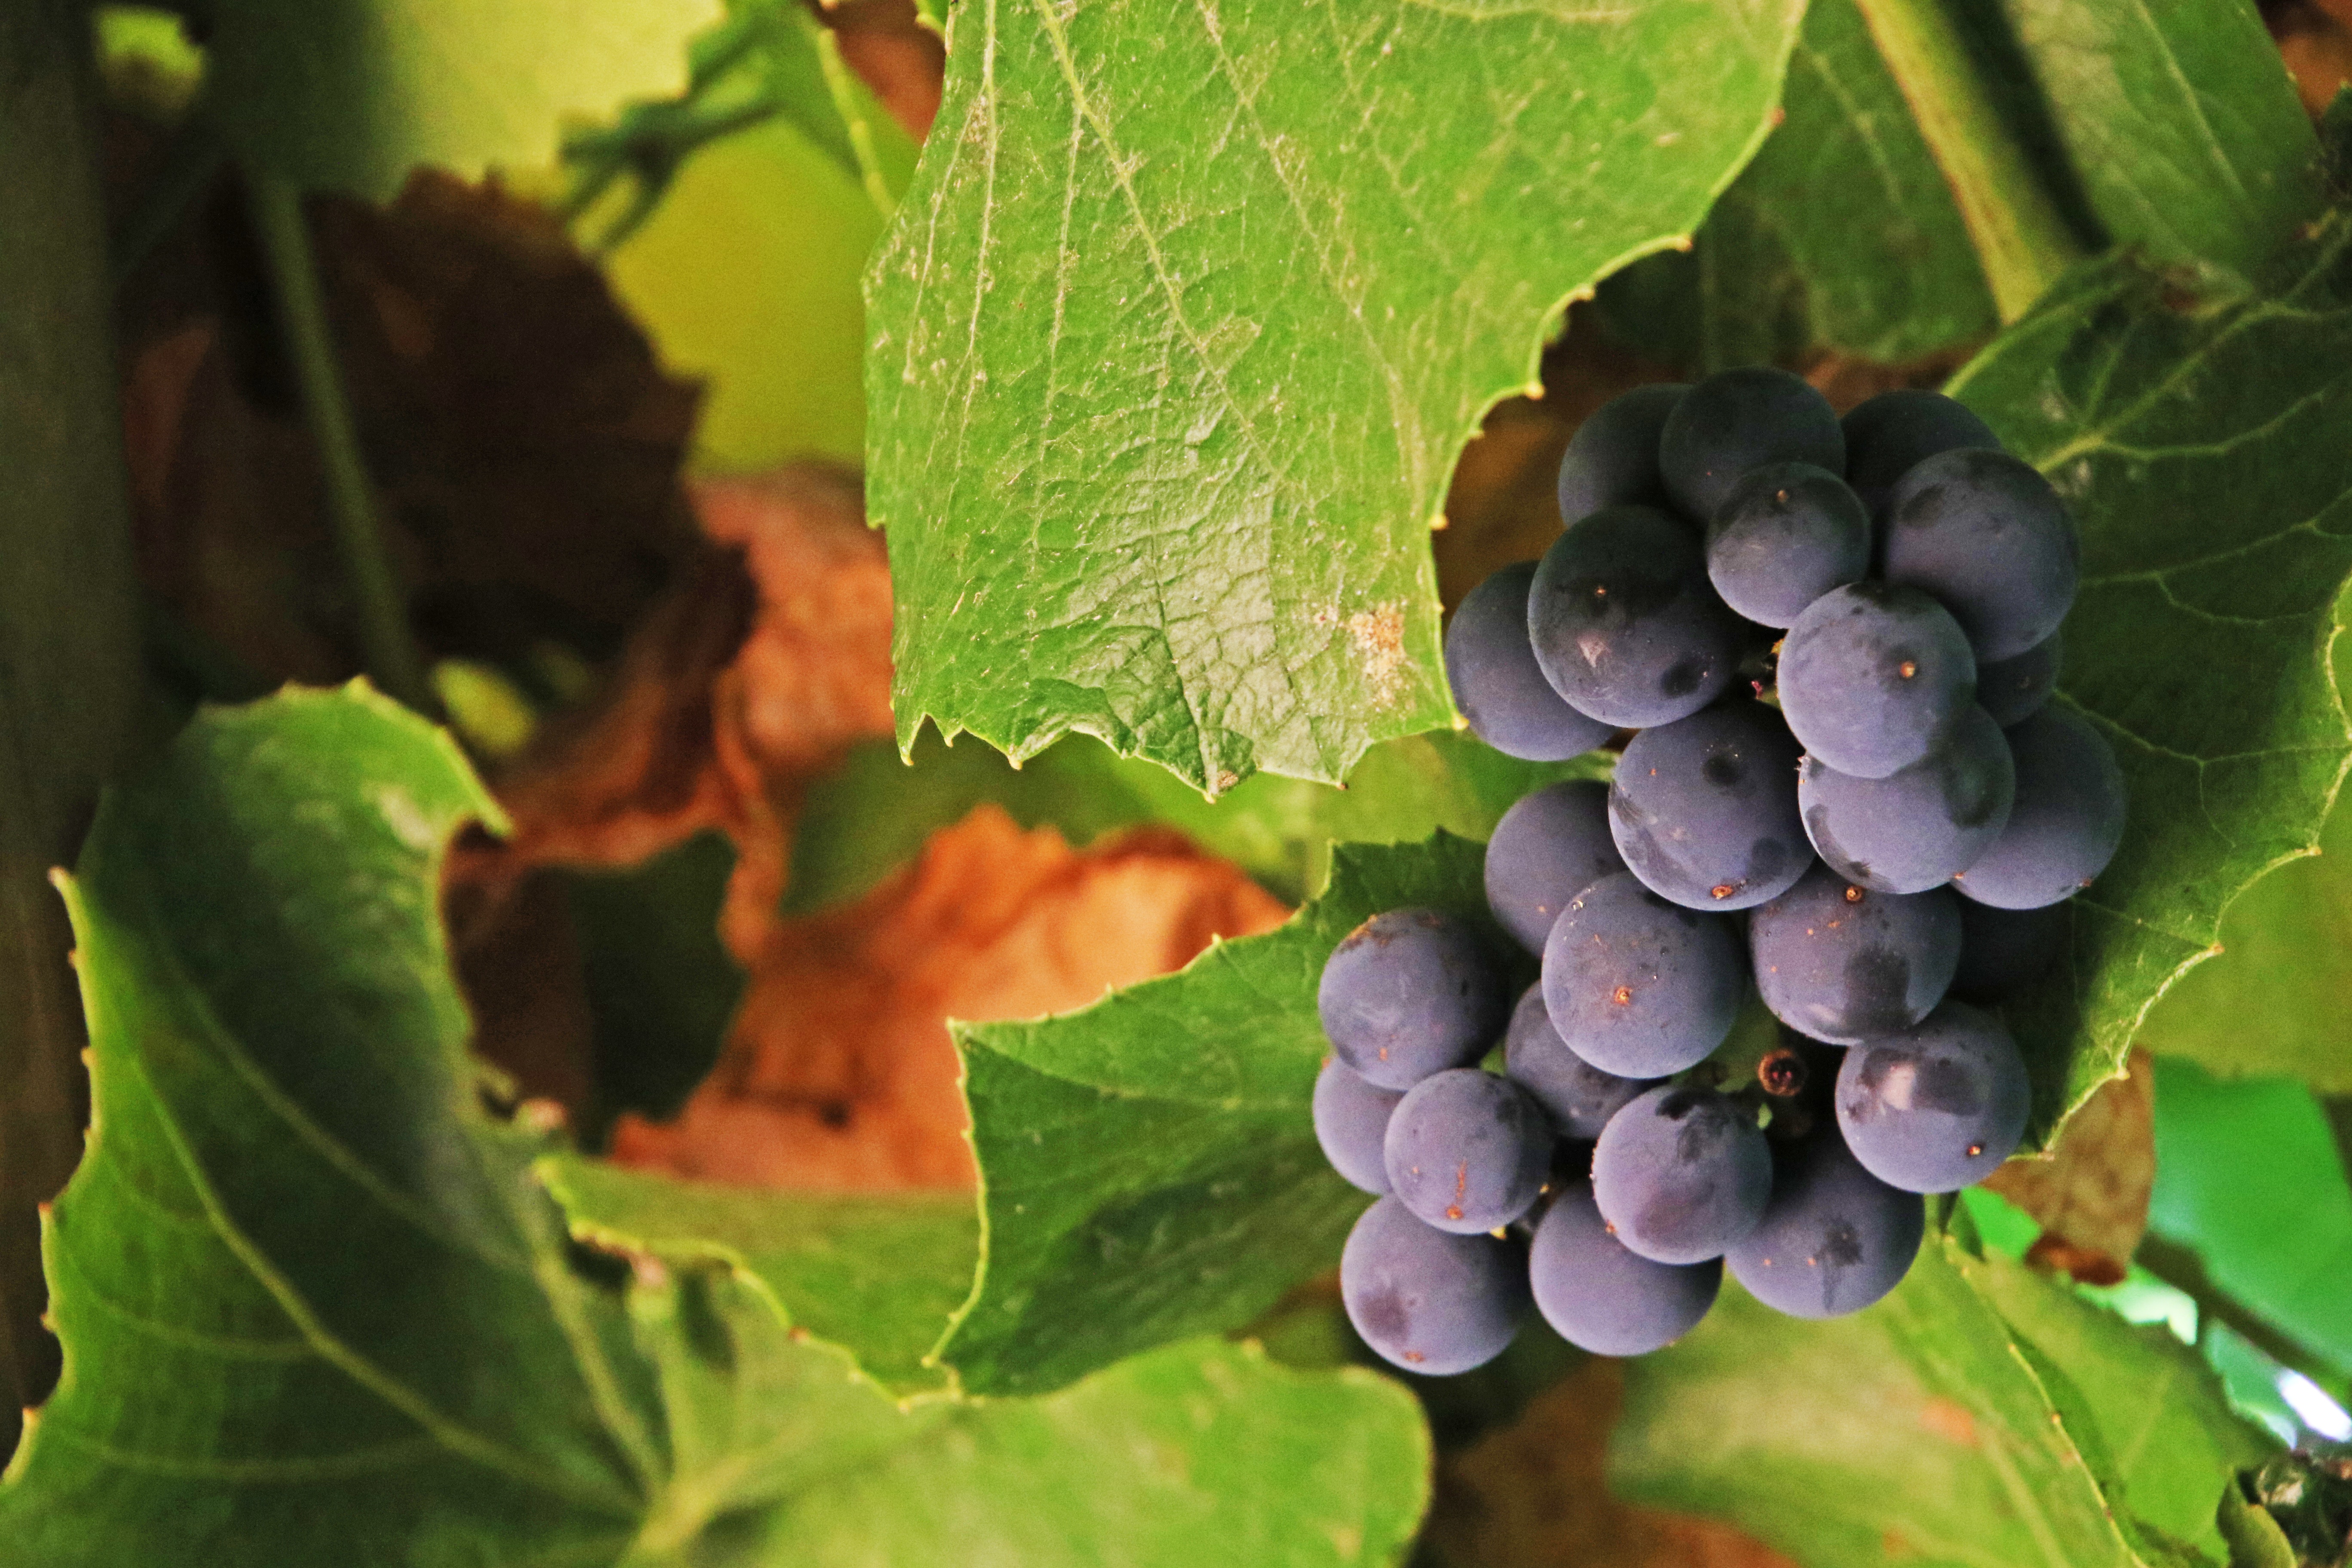 Bunch of black grapes photo